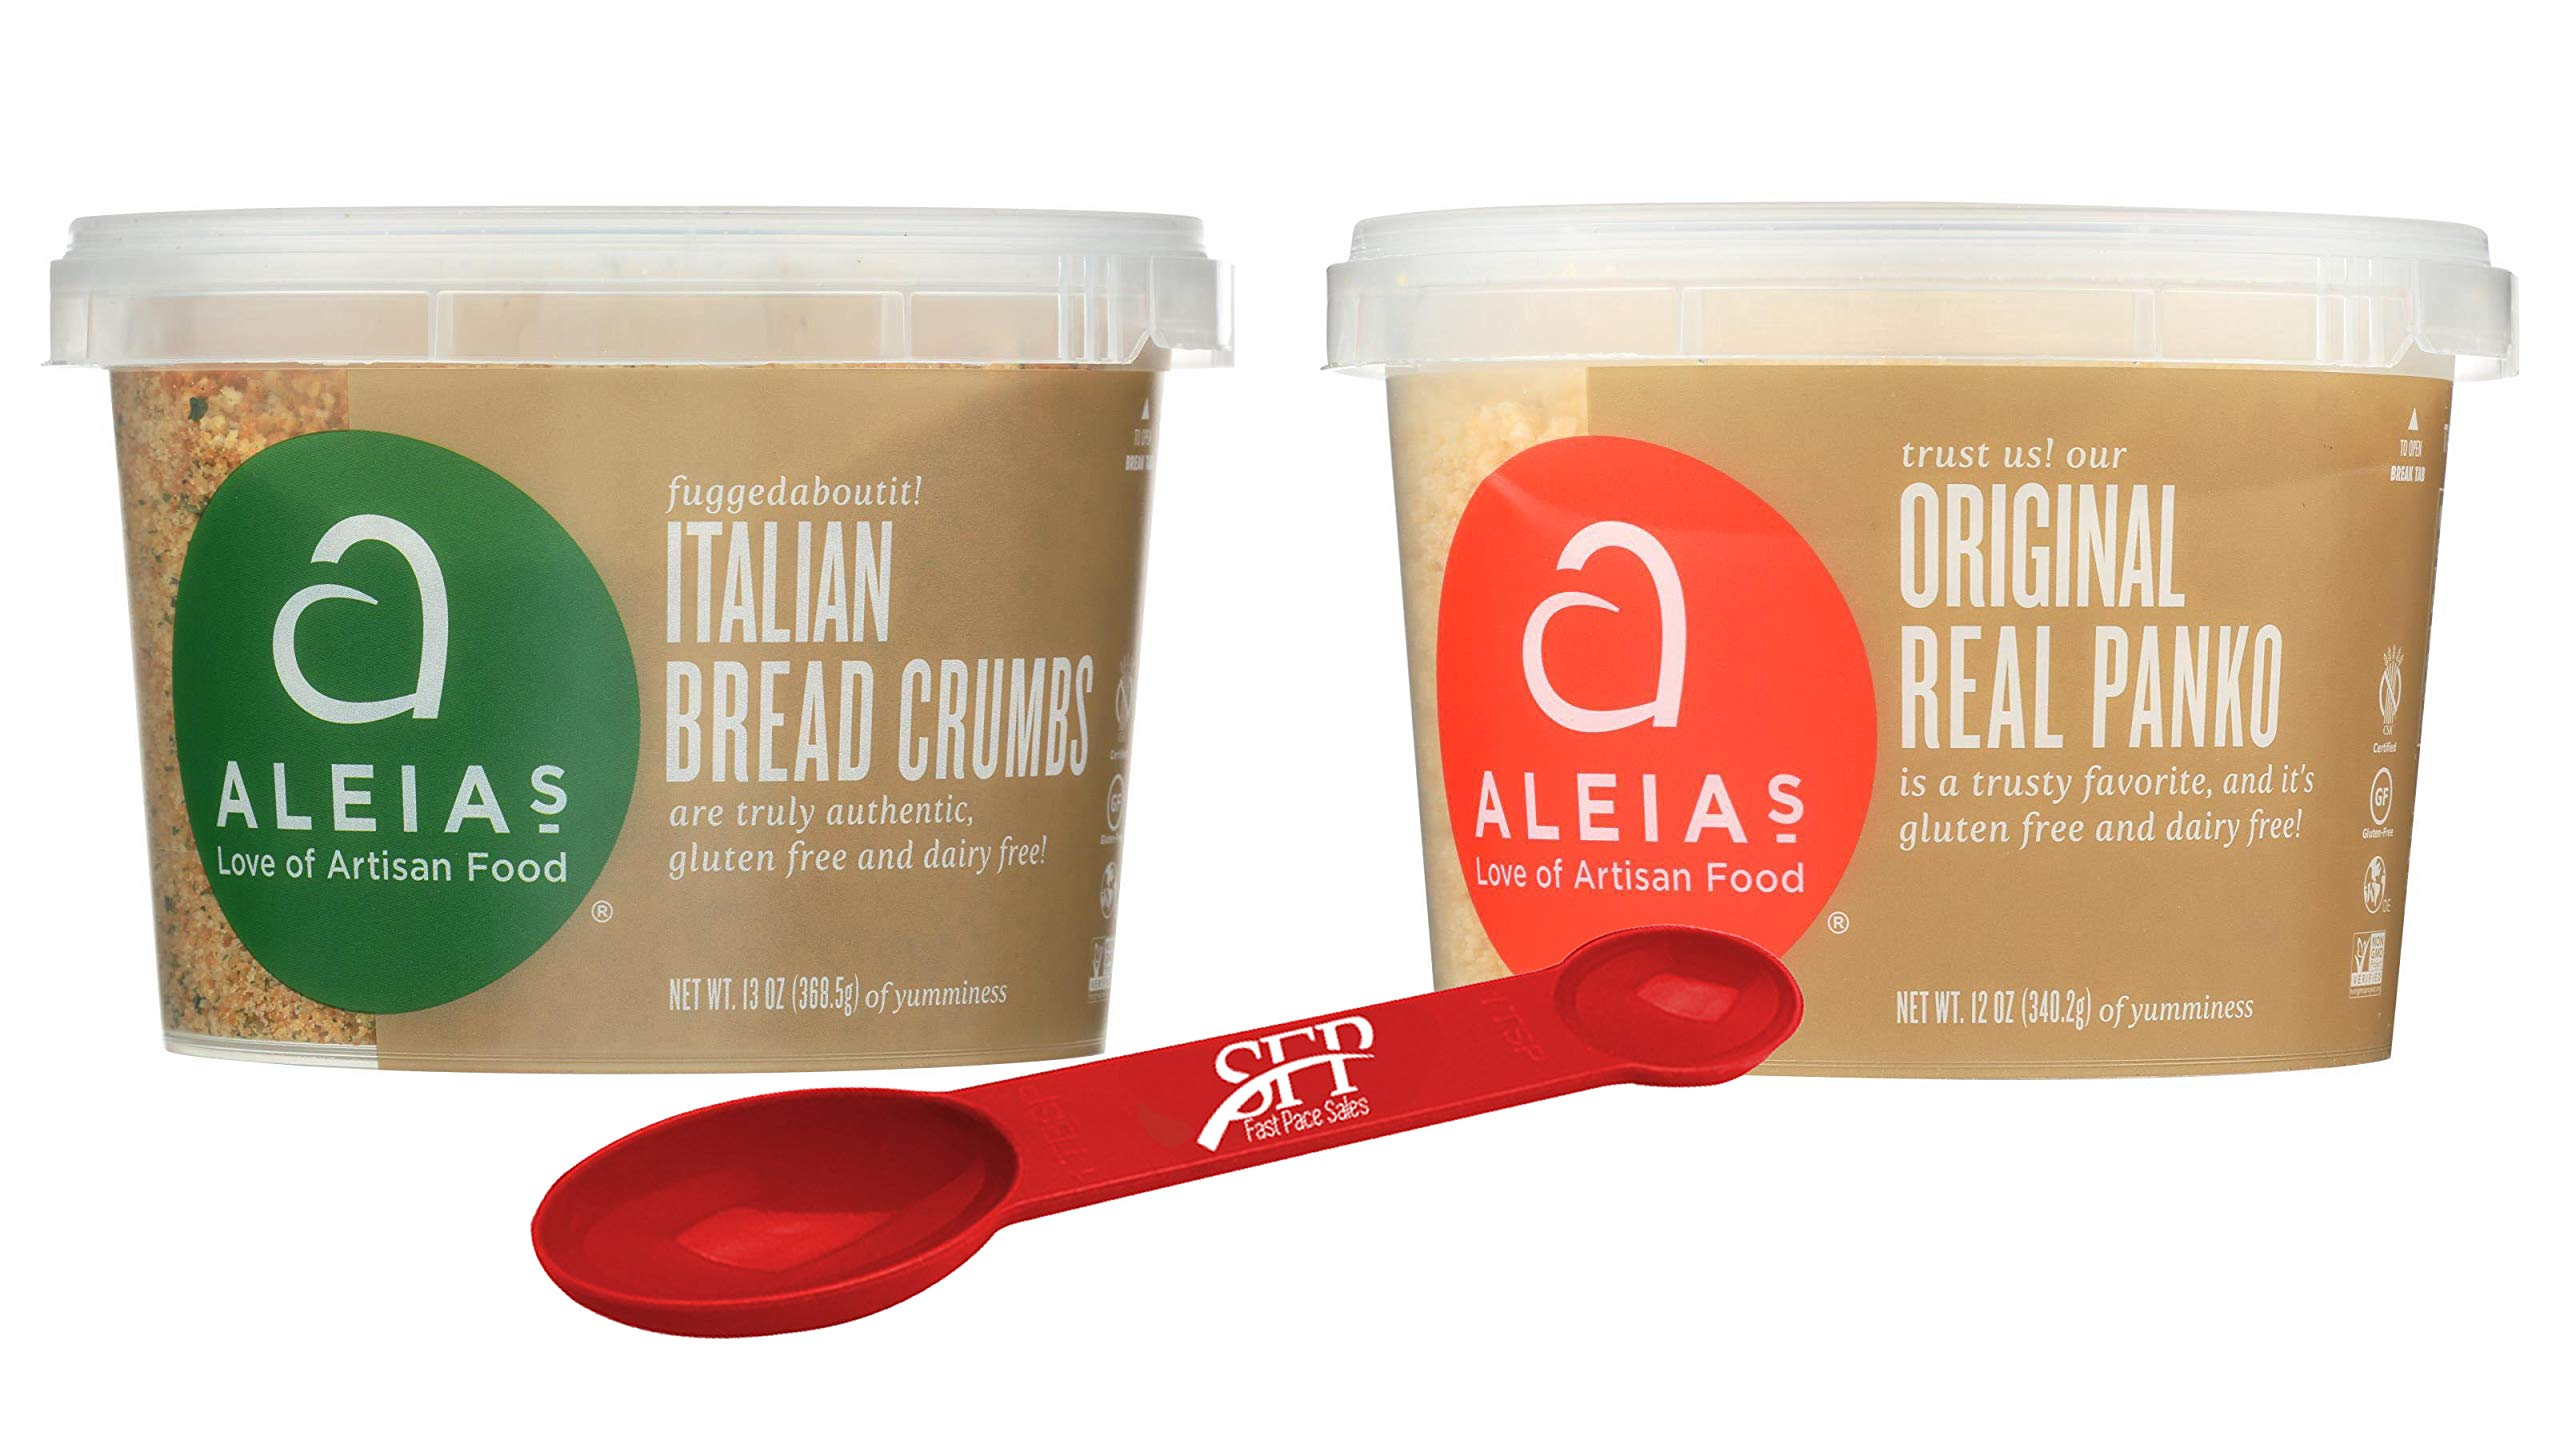 Aleias Gluten Free Variety Pack Includes: (1) Italian Bread Crumbs, Gluten Free Bread Mix, 13 Oz. and (1) Panko Gluten Free Bread Crumbs, 12 Oz, With a Bonus Measuring Spoon. by SFP